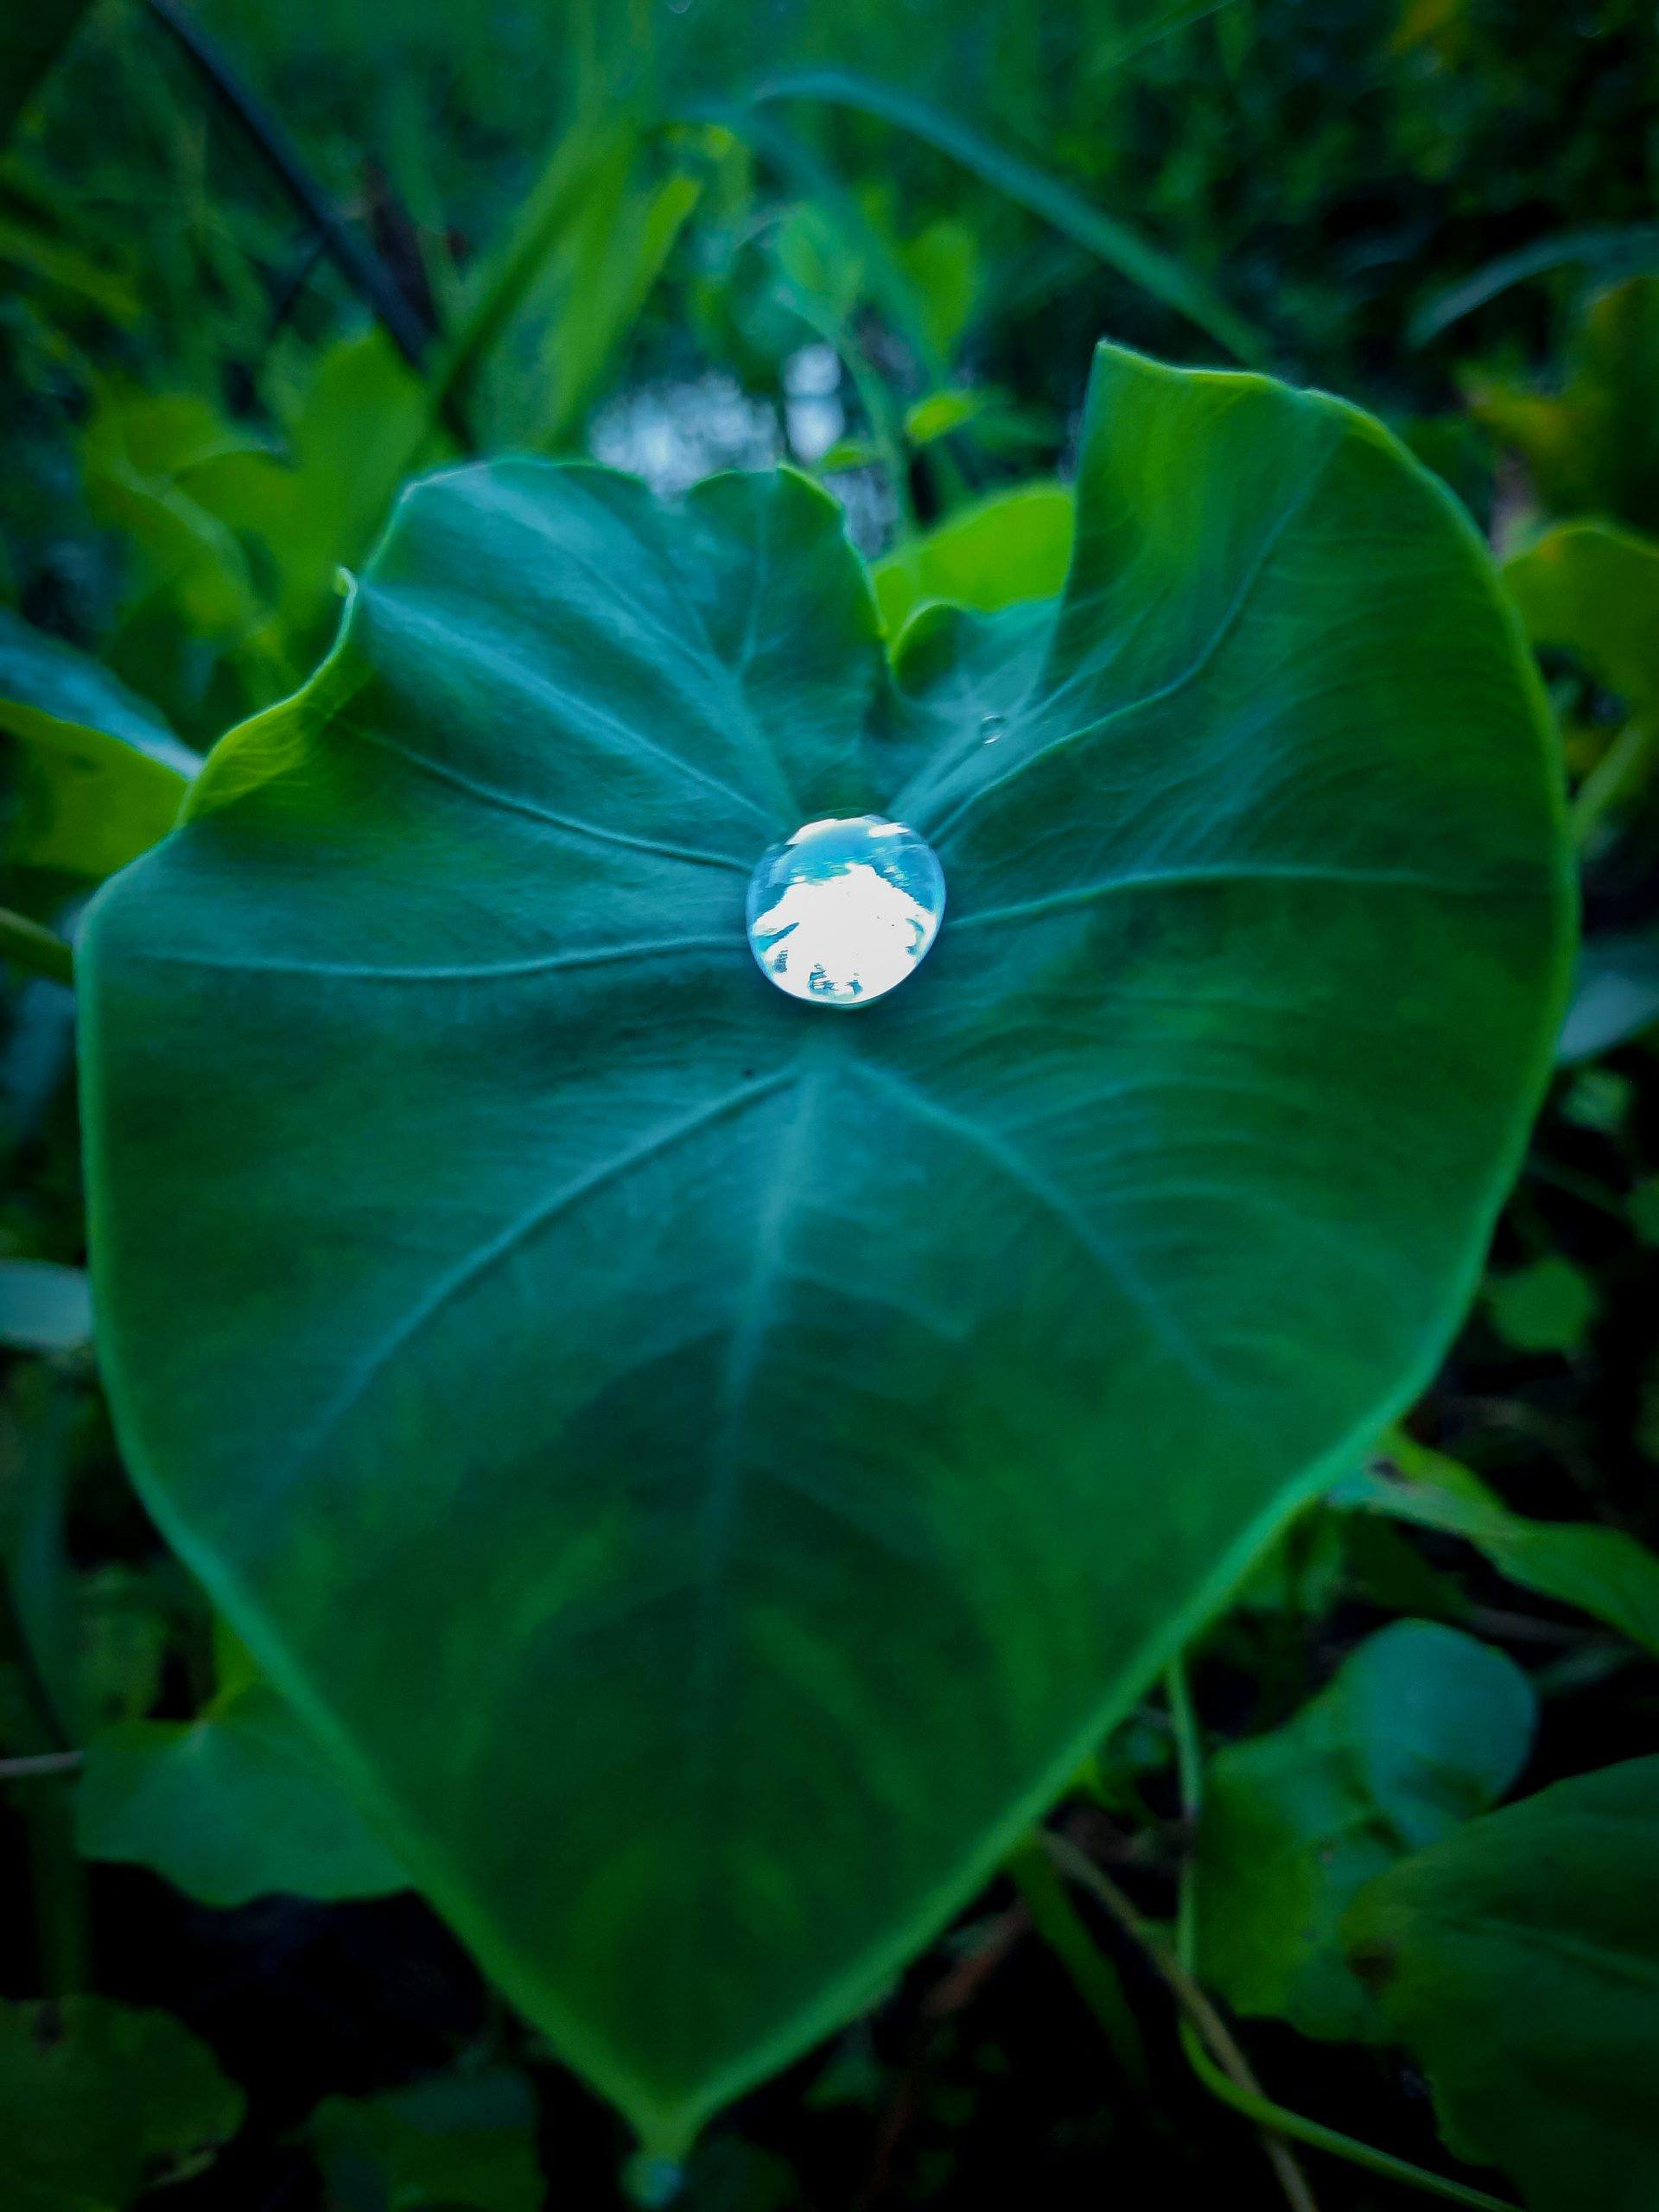 A beautiful water droplet on leaf